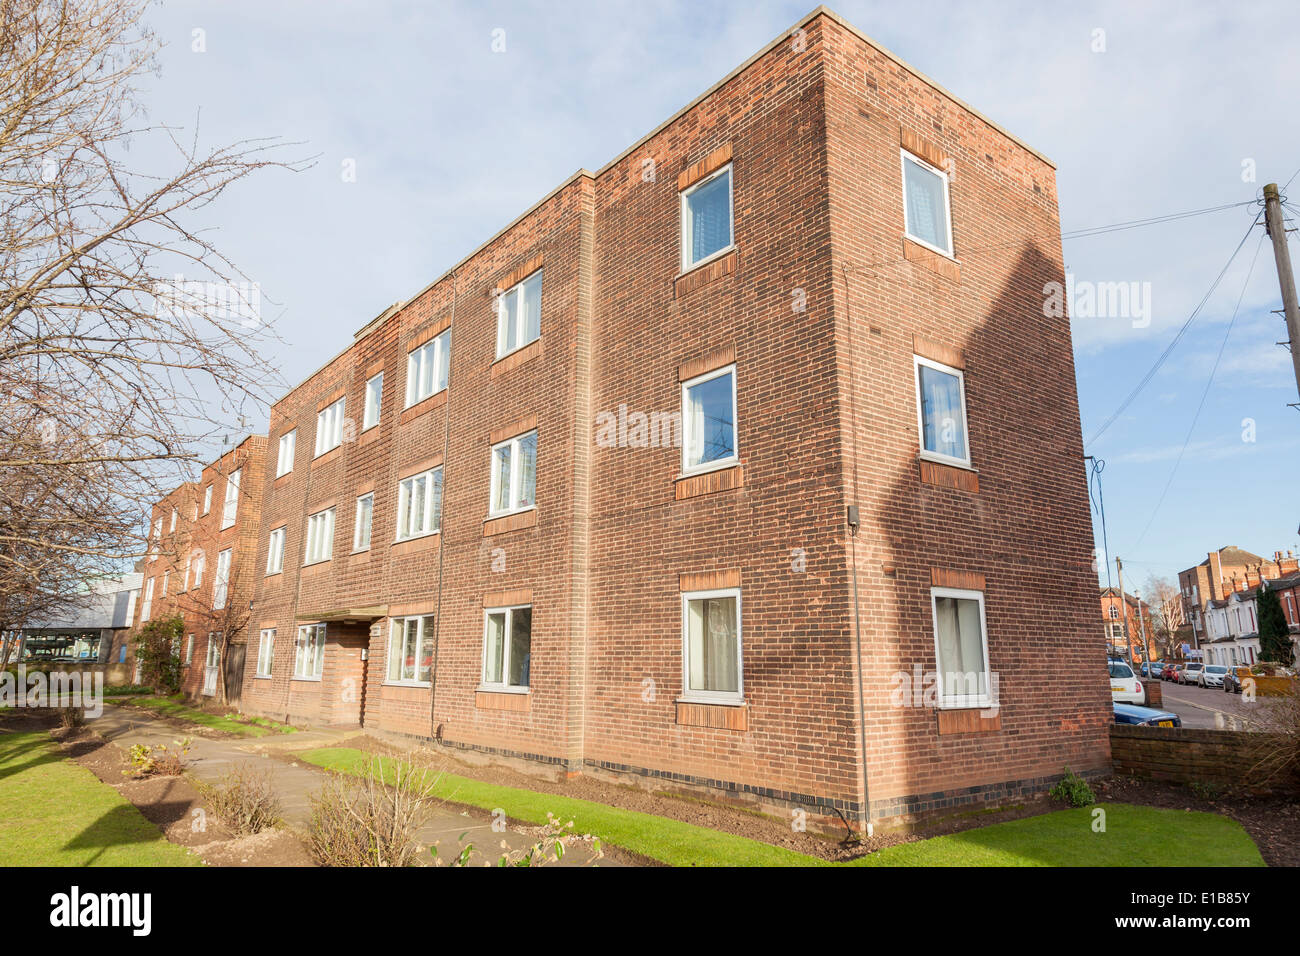 A low rise apartment block. A brick built building from ...